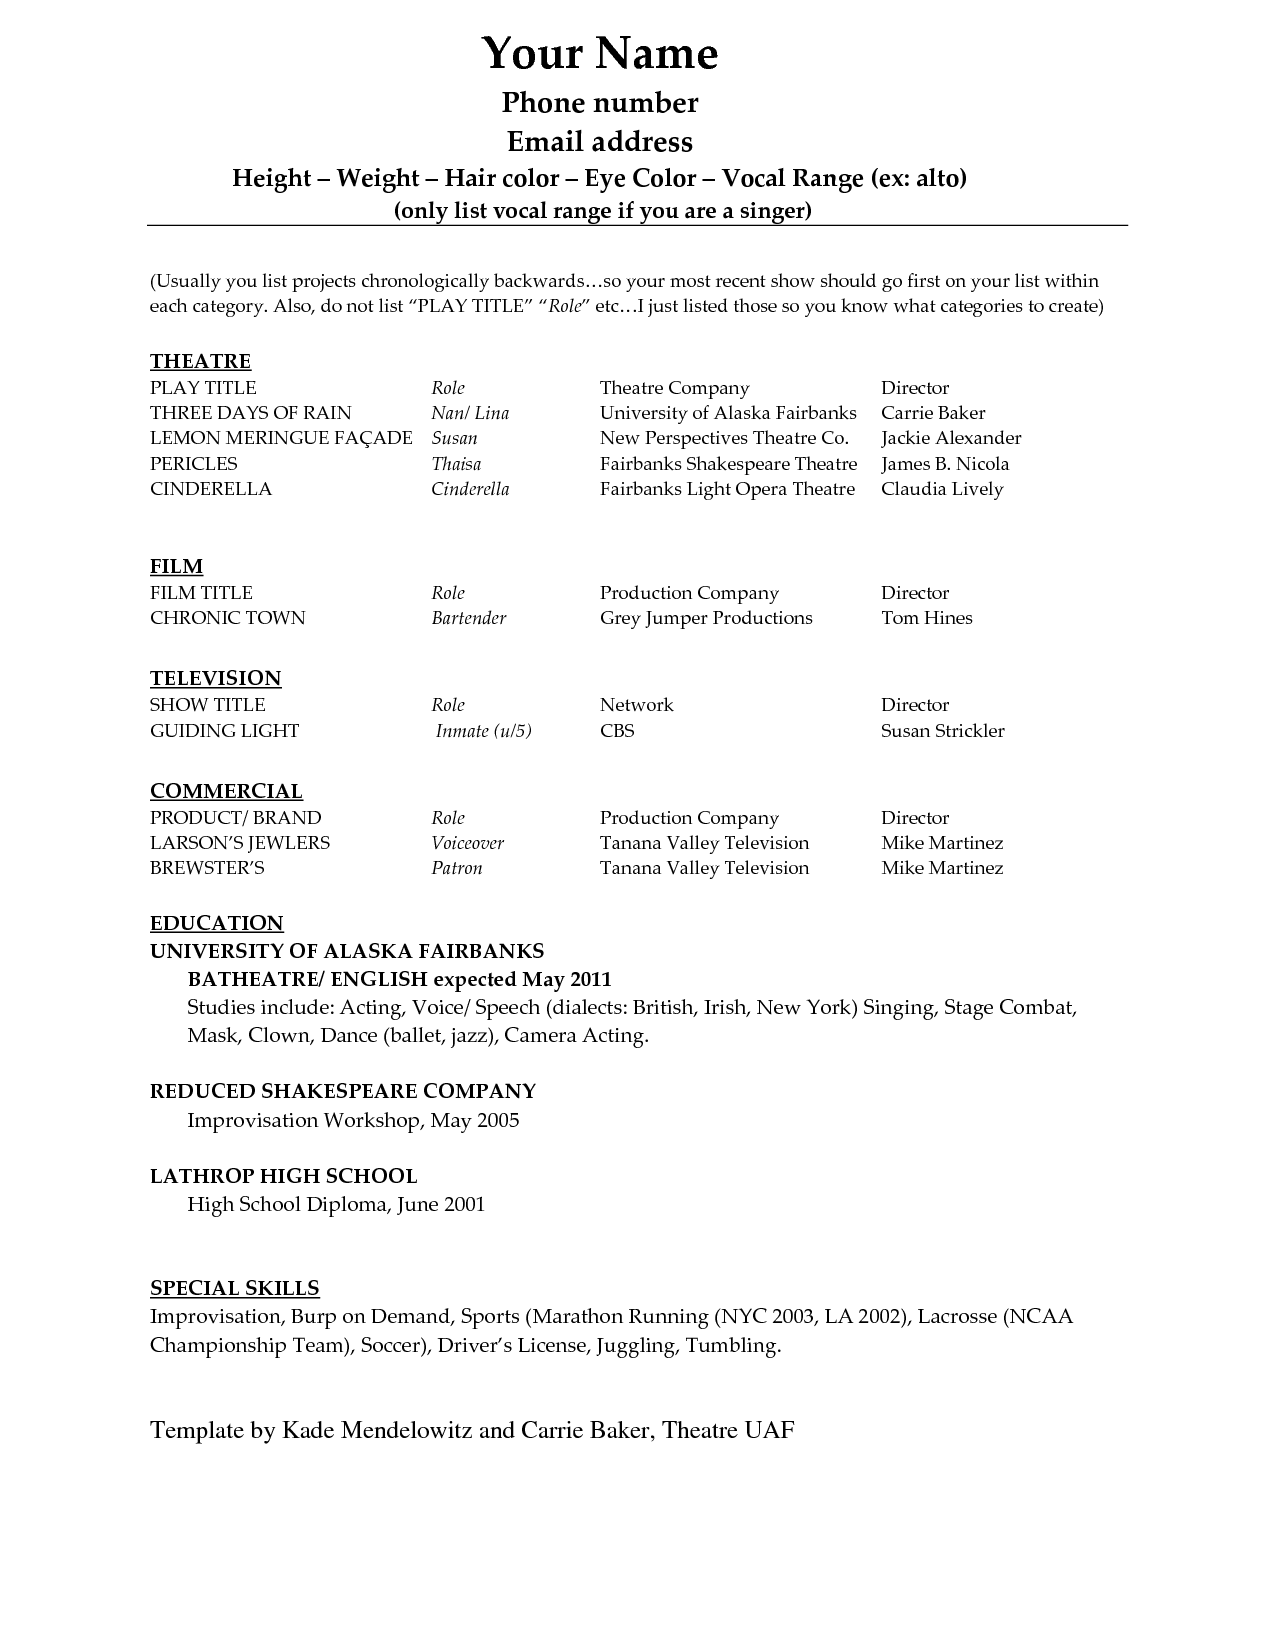 Acting Resume Template Download Freecareer Resume Template Career Resume Template Template Microsoft Cover